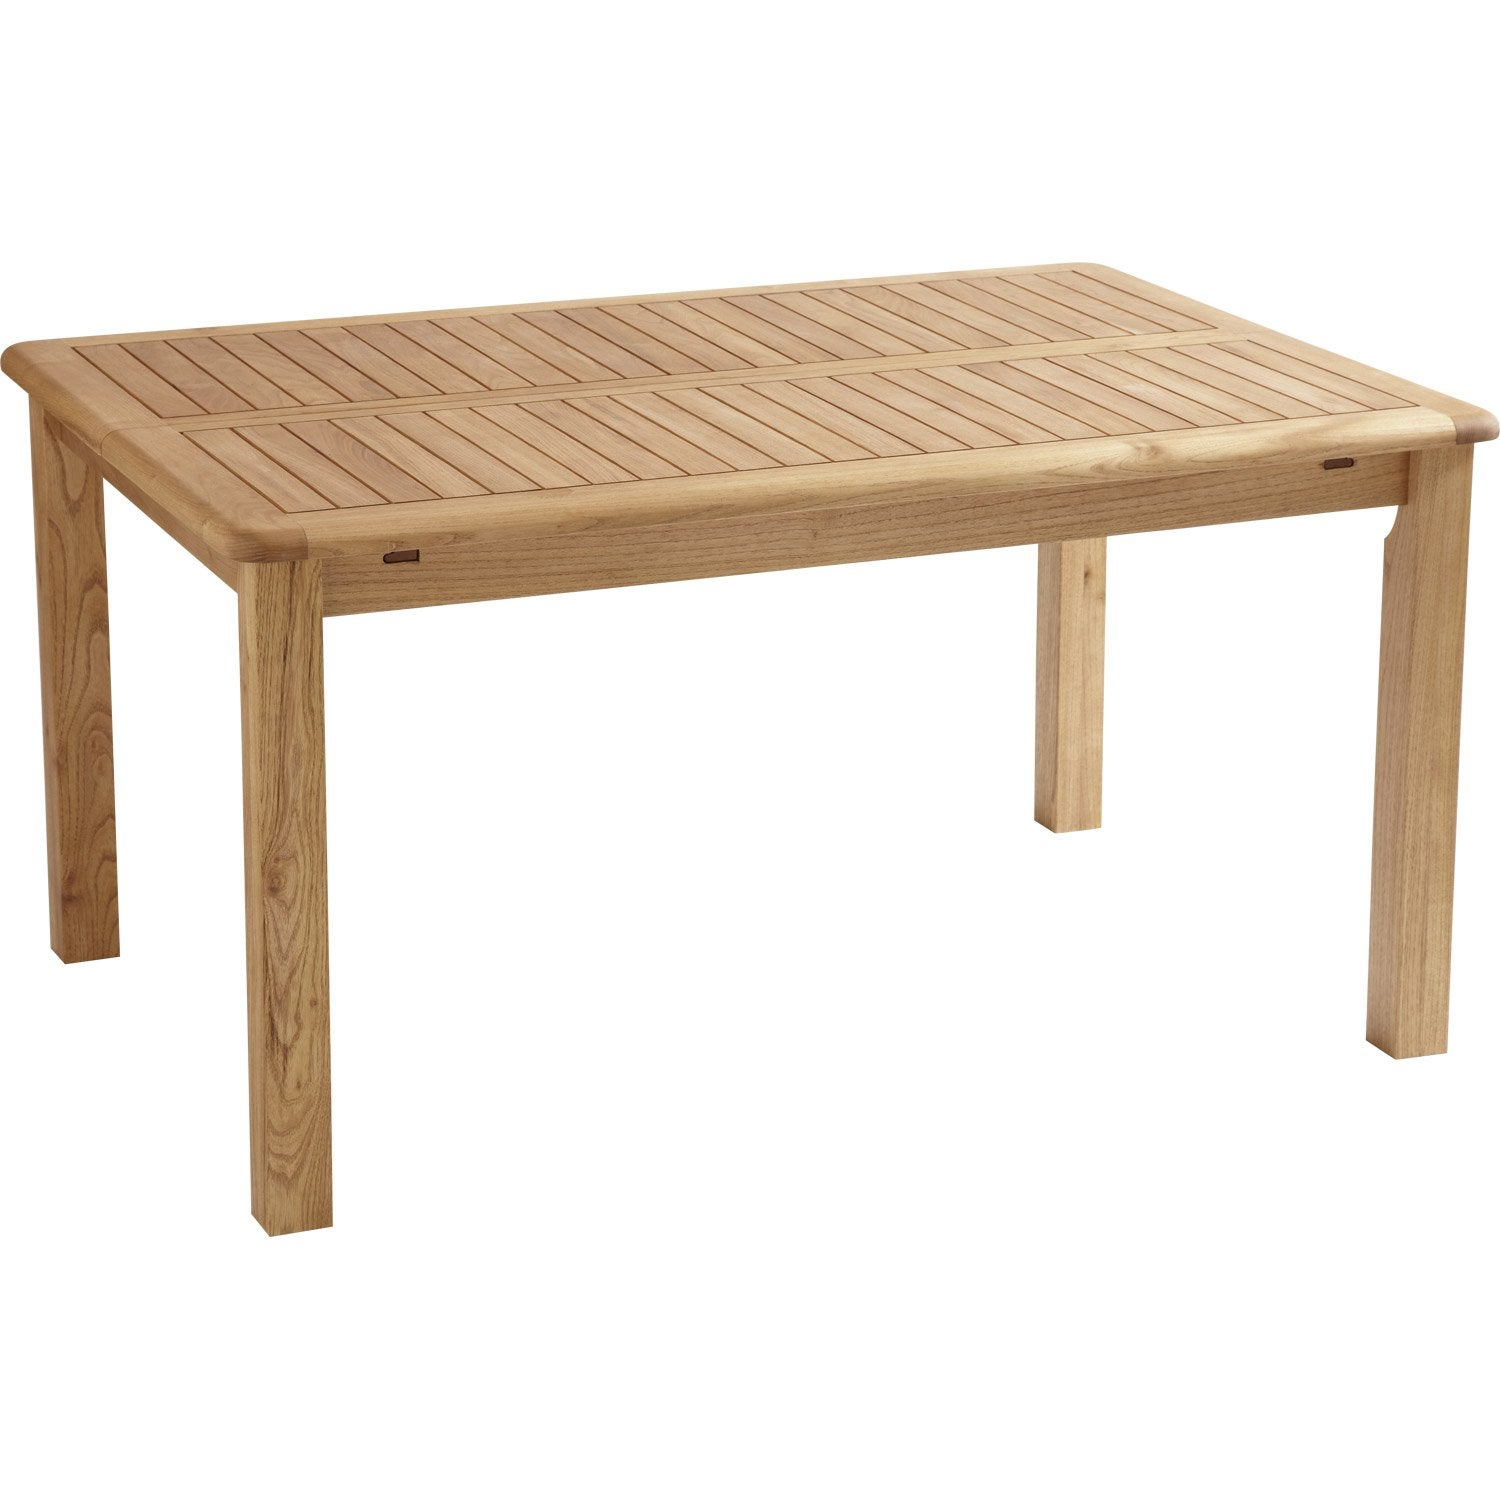 Dimension table salon de jardin - Leroy merlin table pliante ...